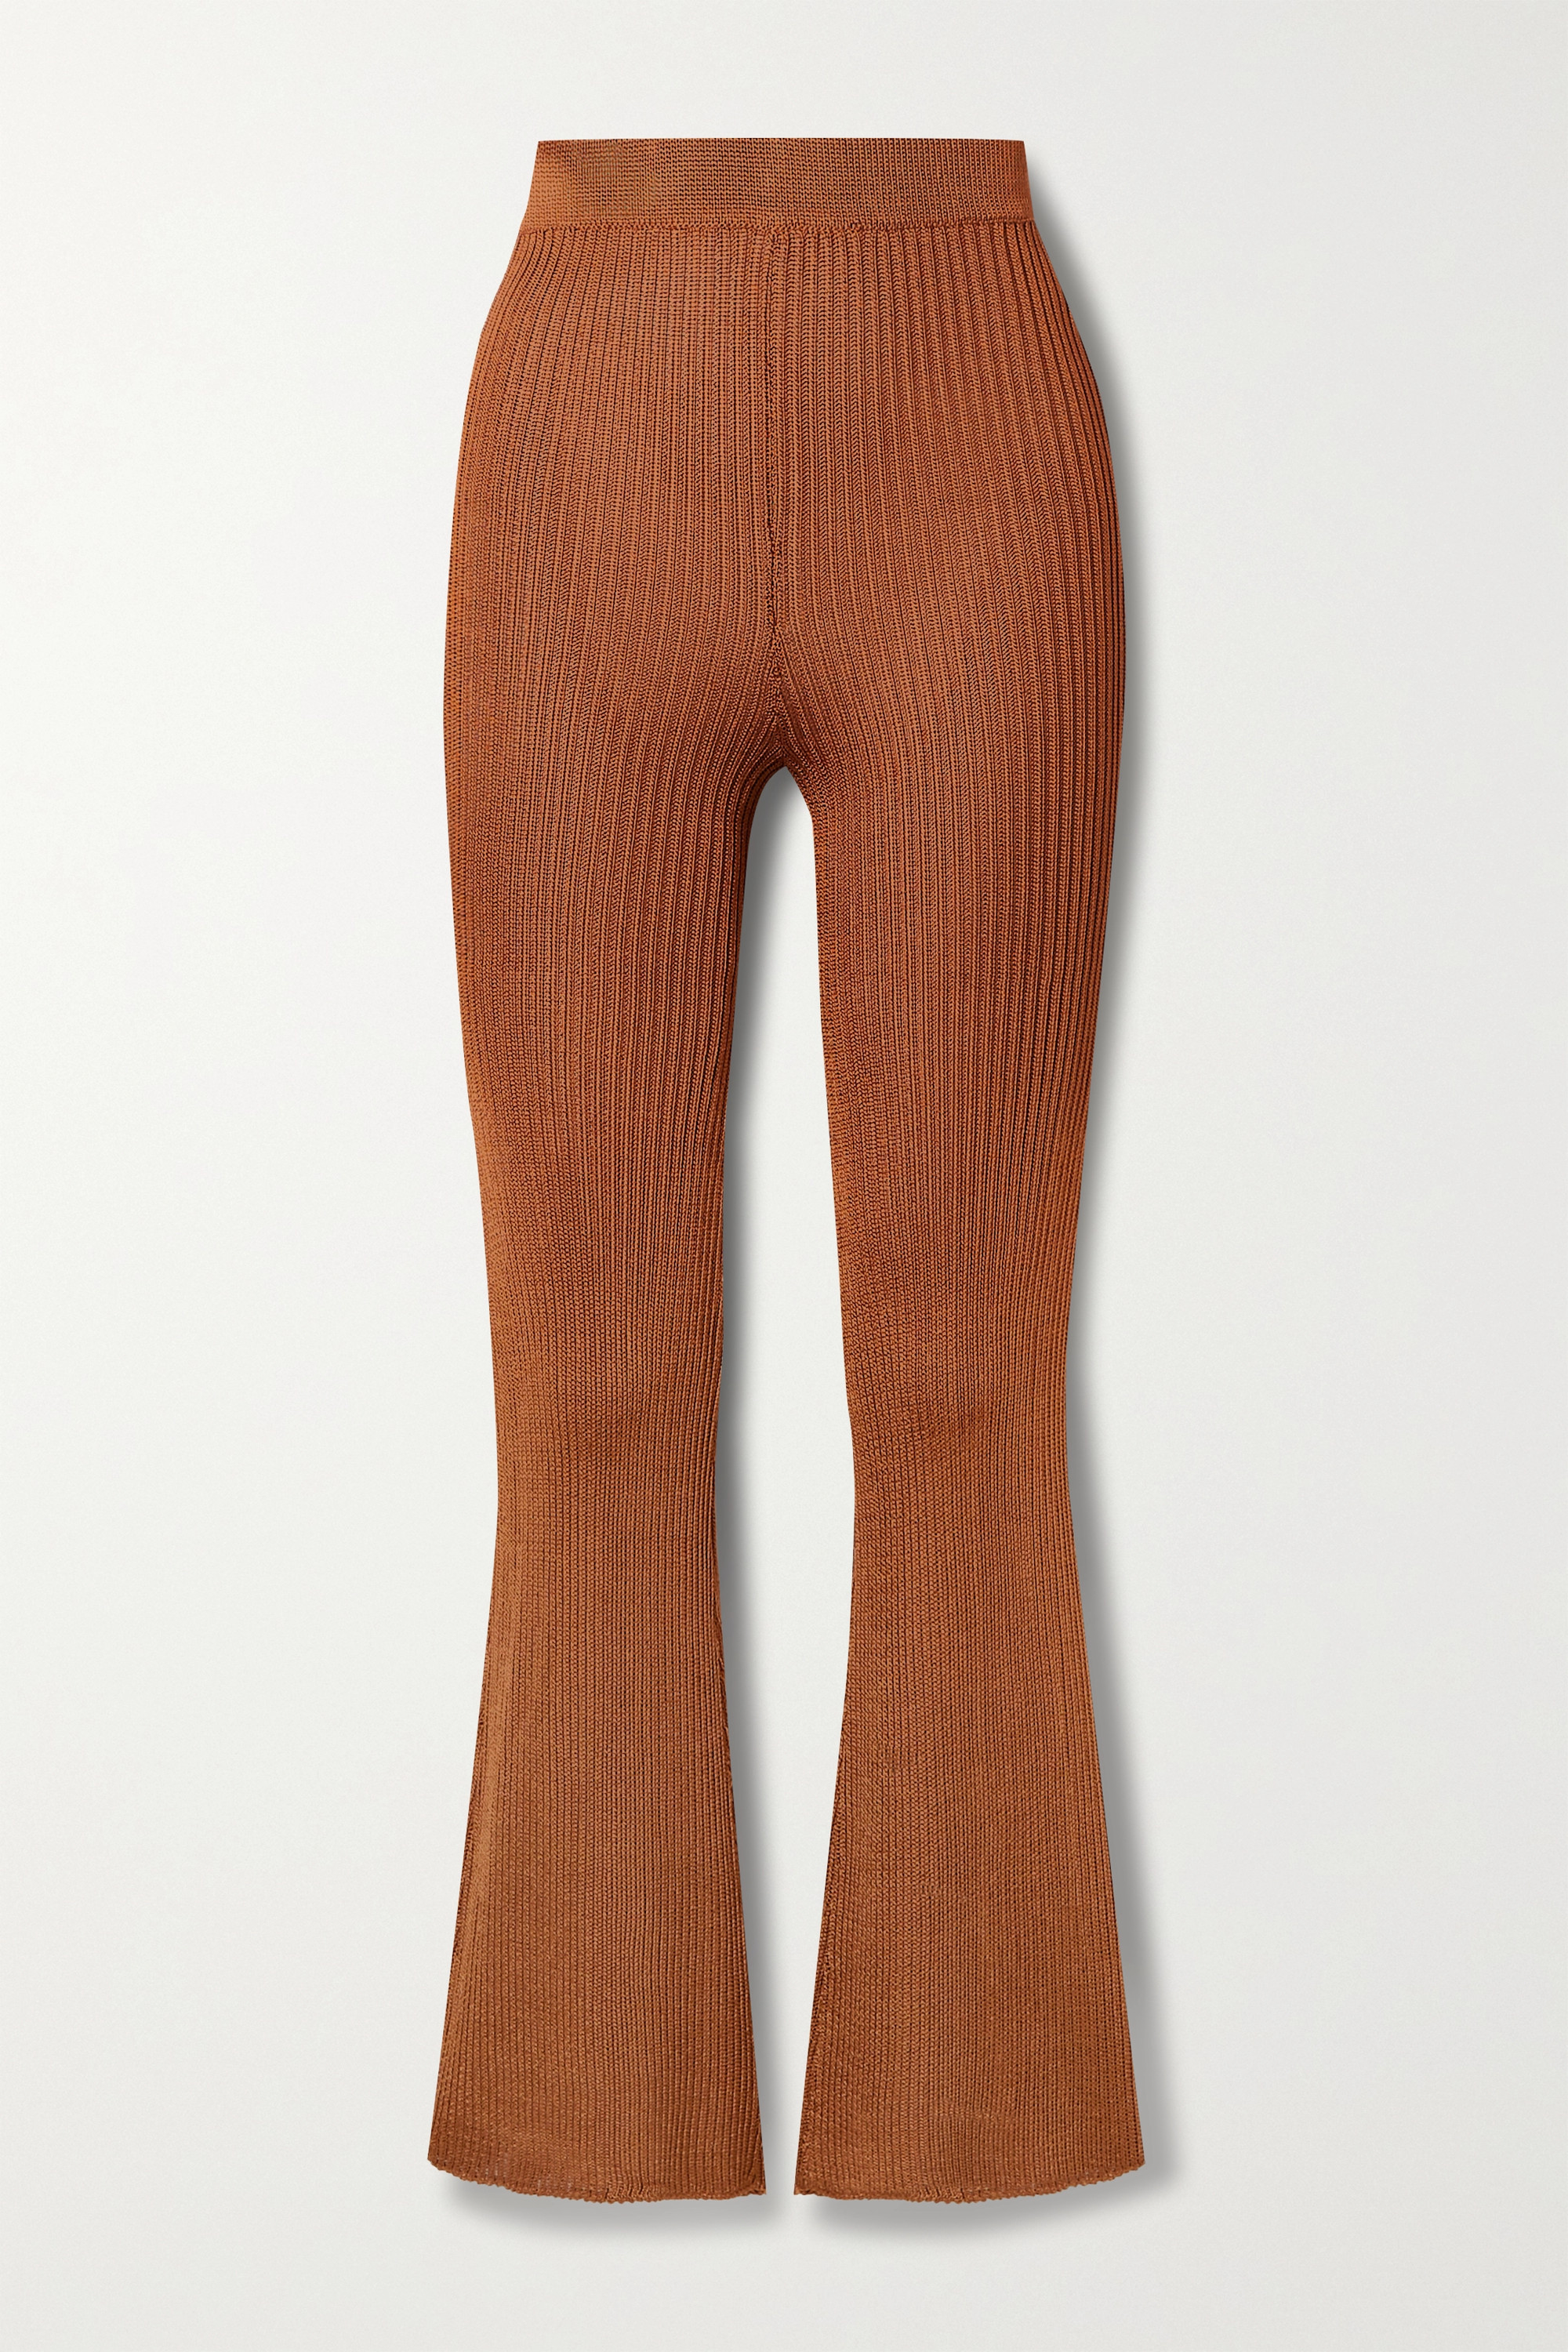 Calle Del Mar + NET SUSTAIN ribbed-knit flared pants